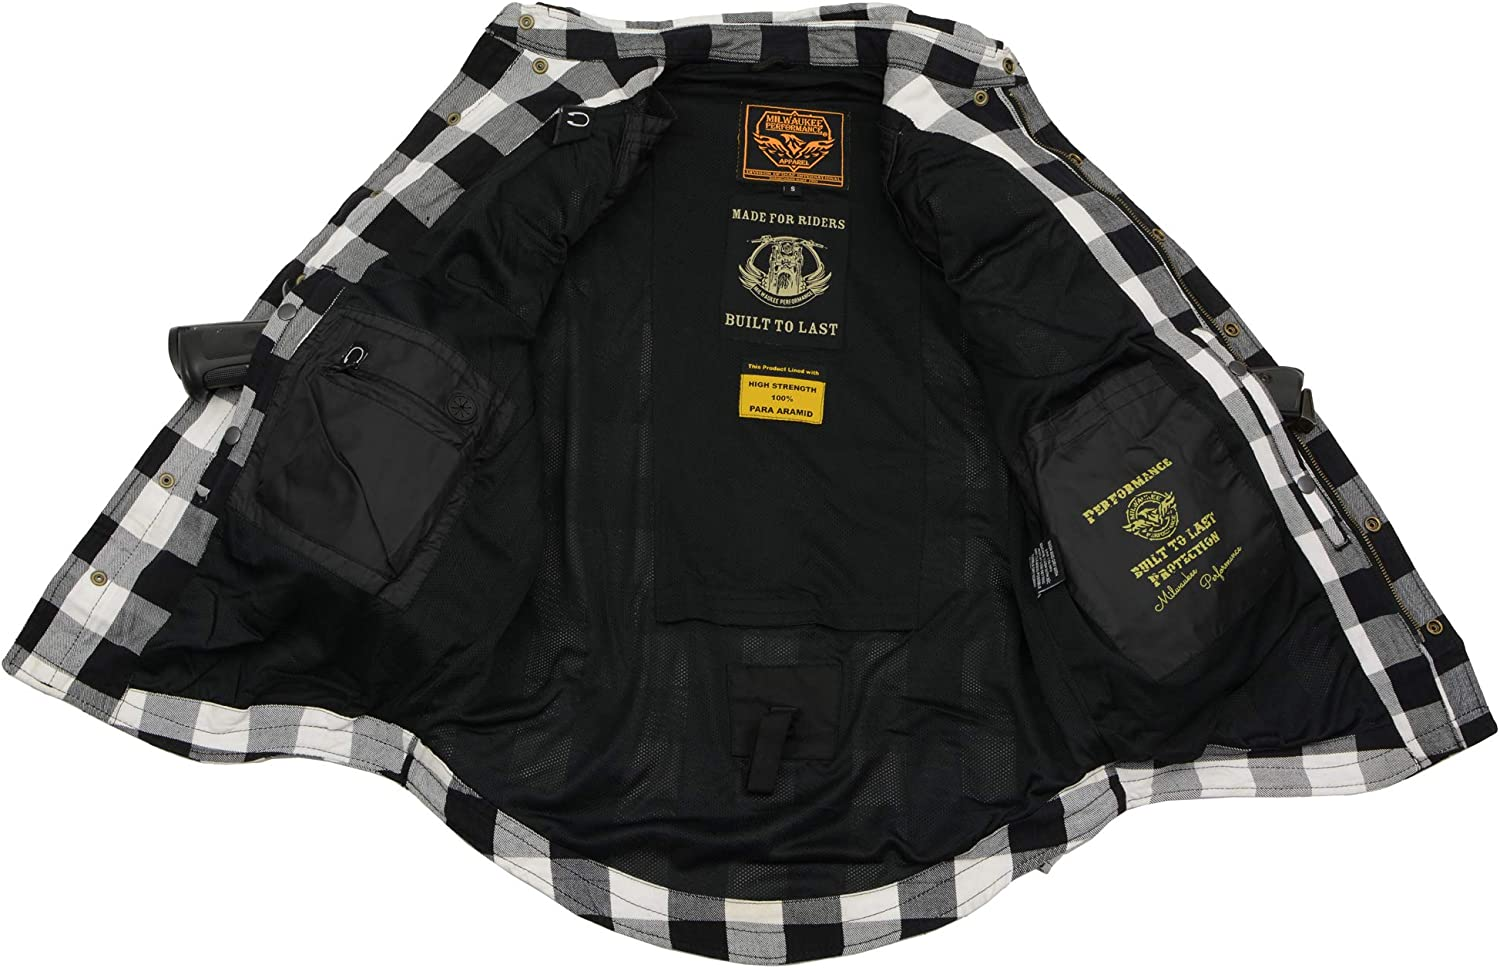 Milwaukee Leather MPM1633 Mens Armored Checkered Flannel Biker Shirt with Aramid by DuPont Fibers Blk//White 5X-Large